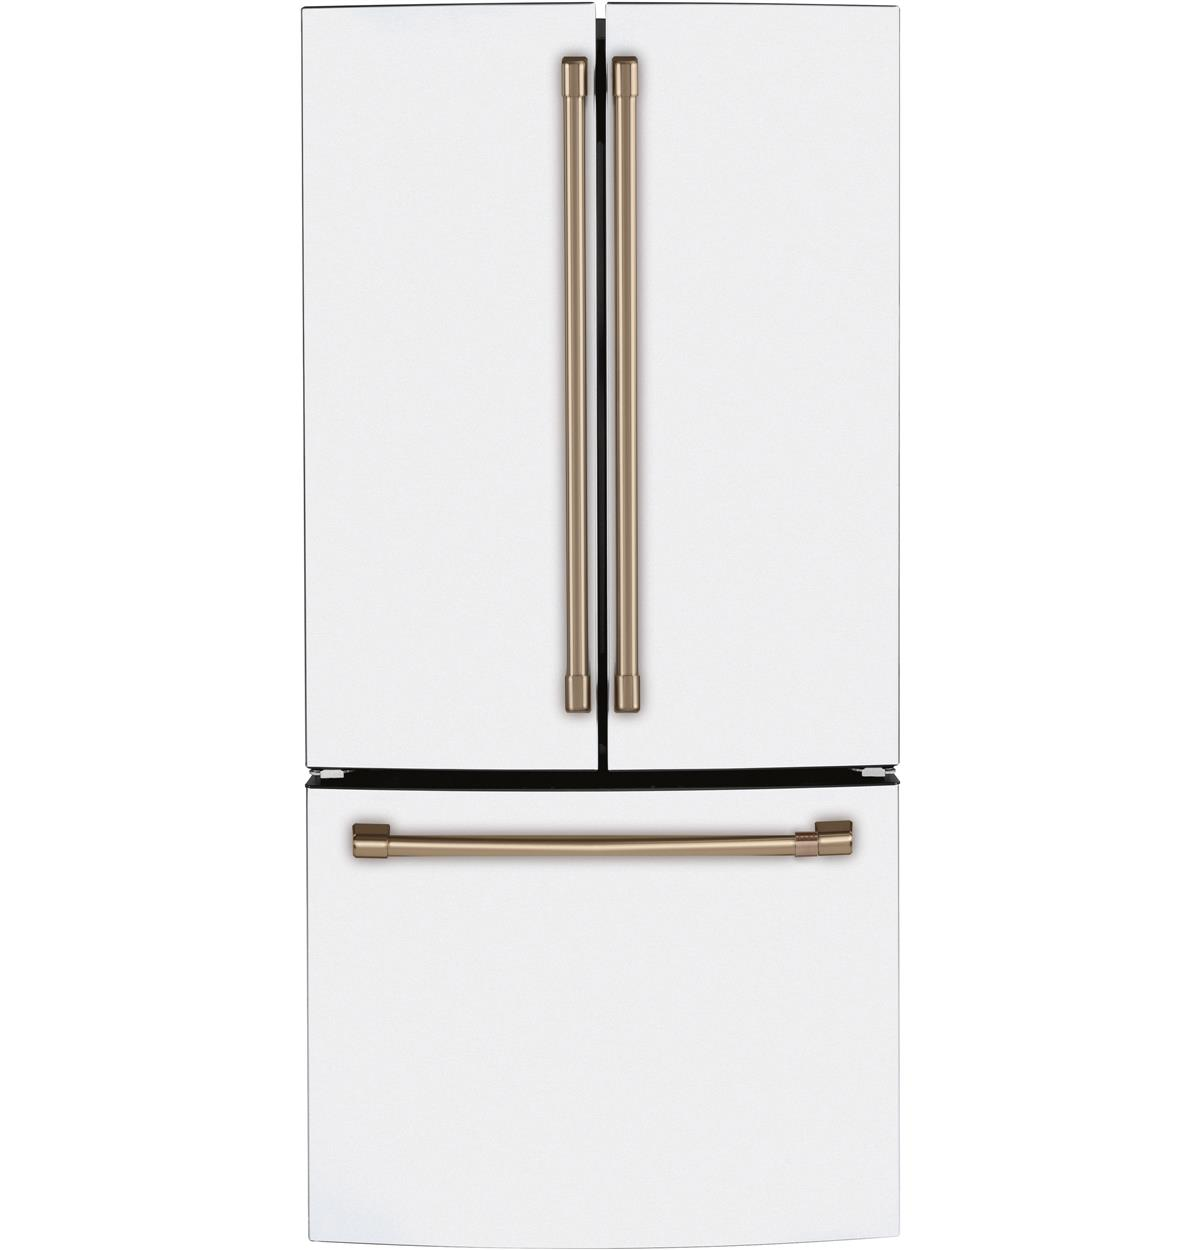 Café™ ENERGY STAR® 18.6 Cu. Ft. Counter-Depth French-Door Refrigerator